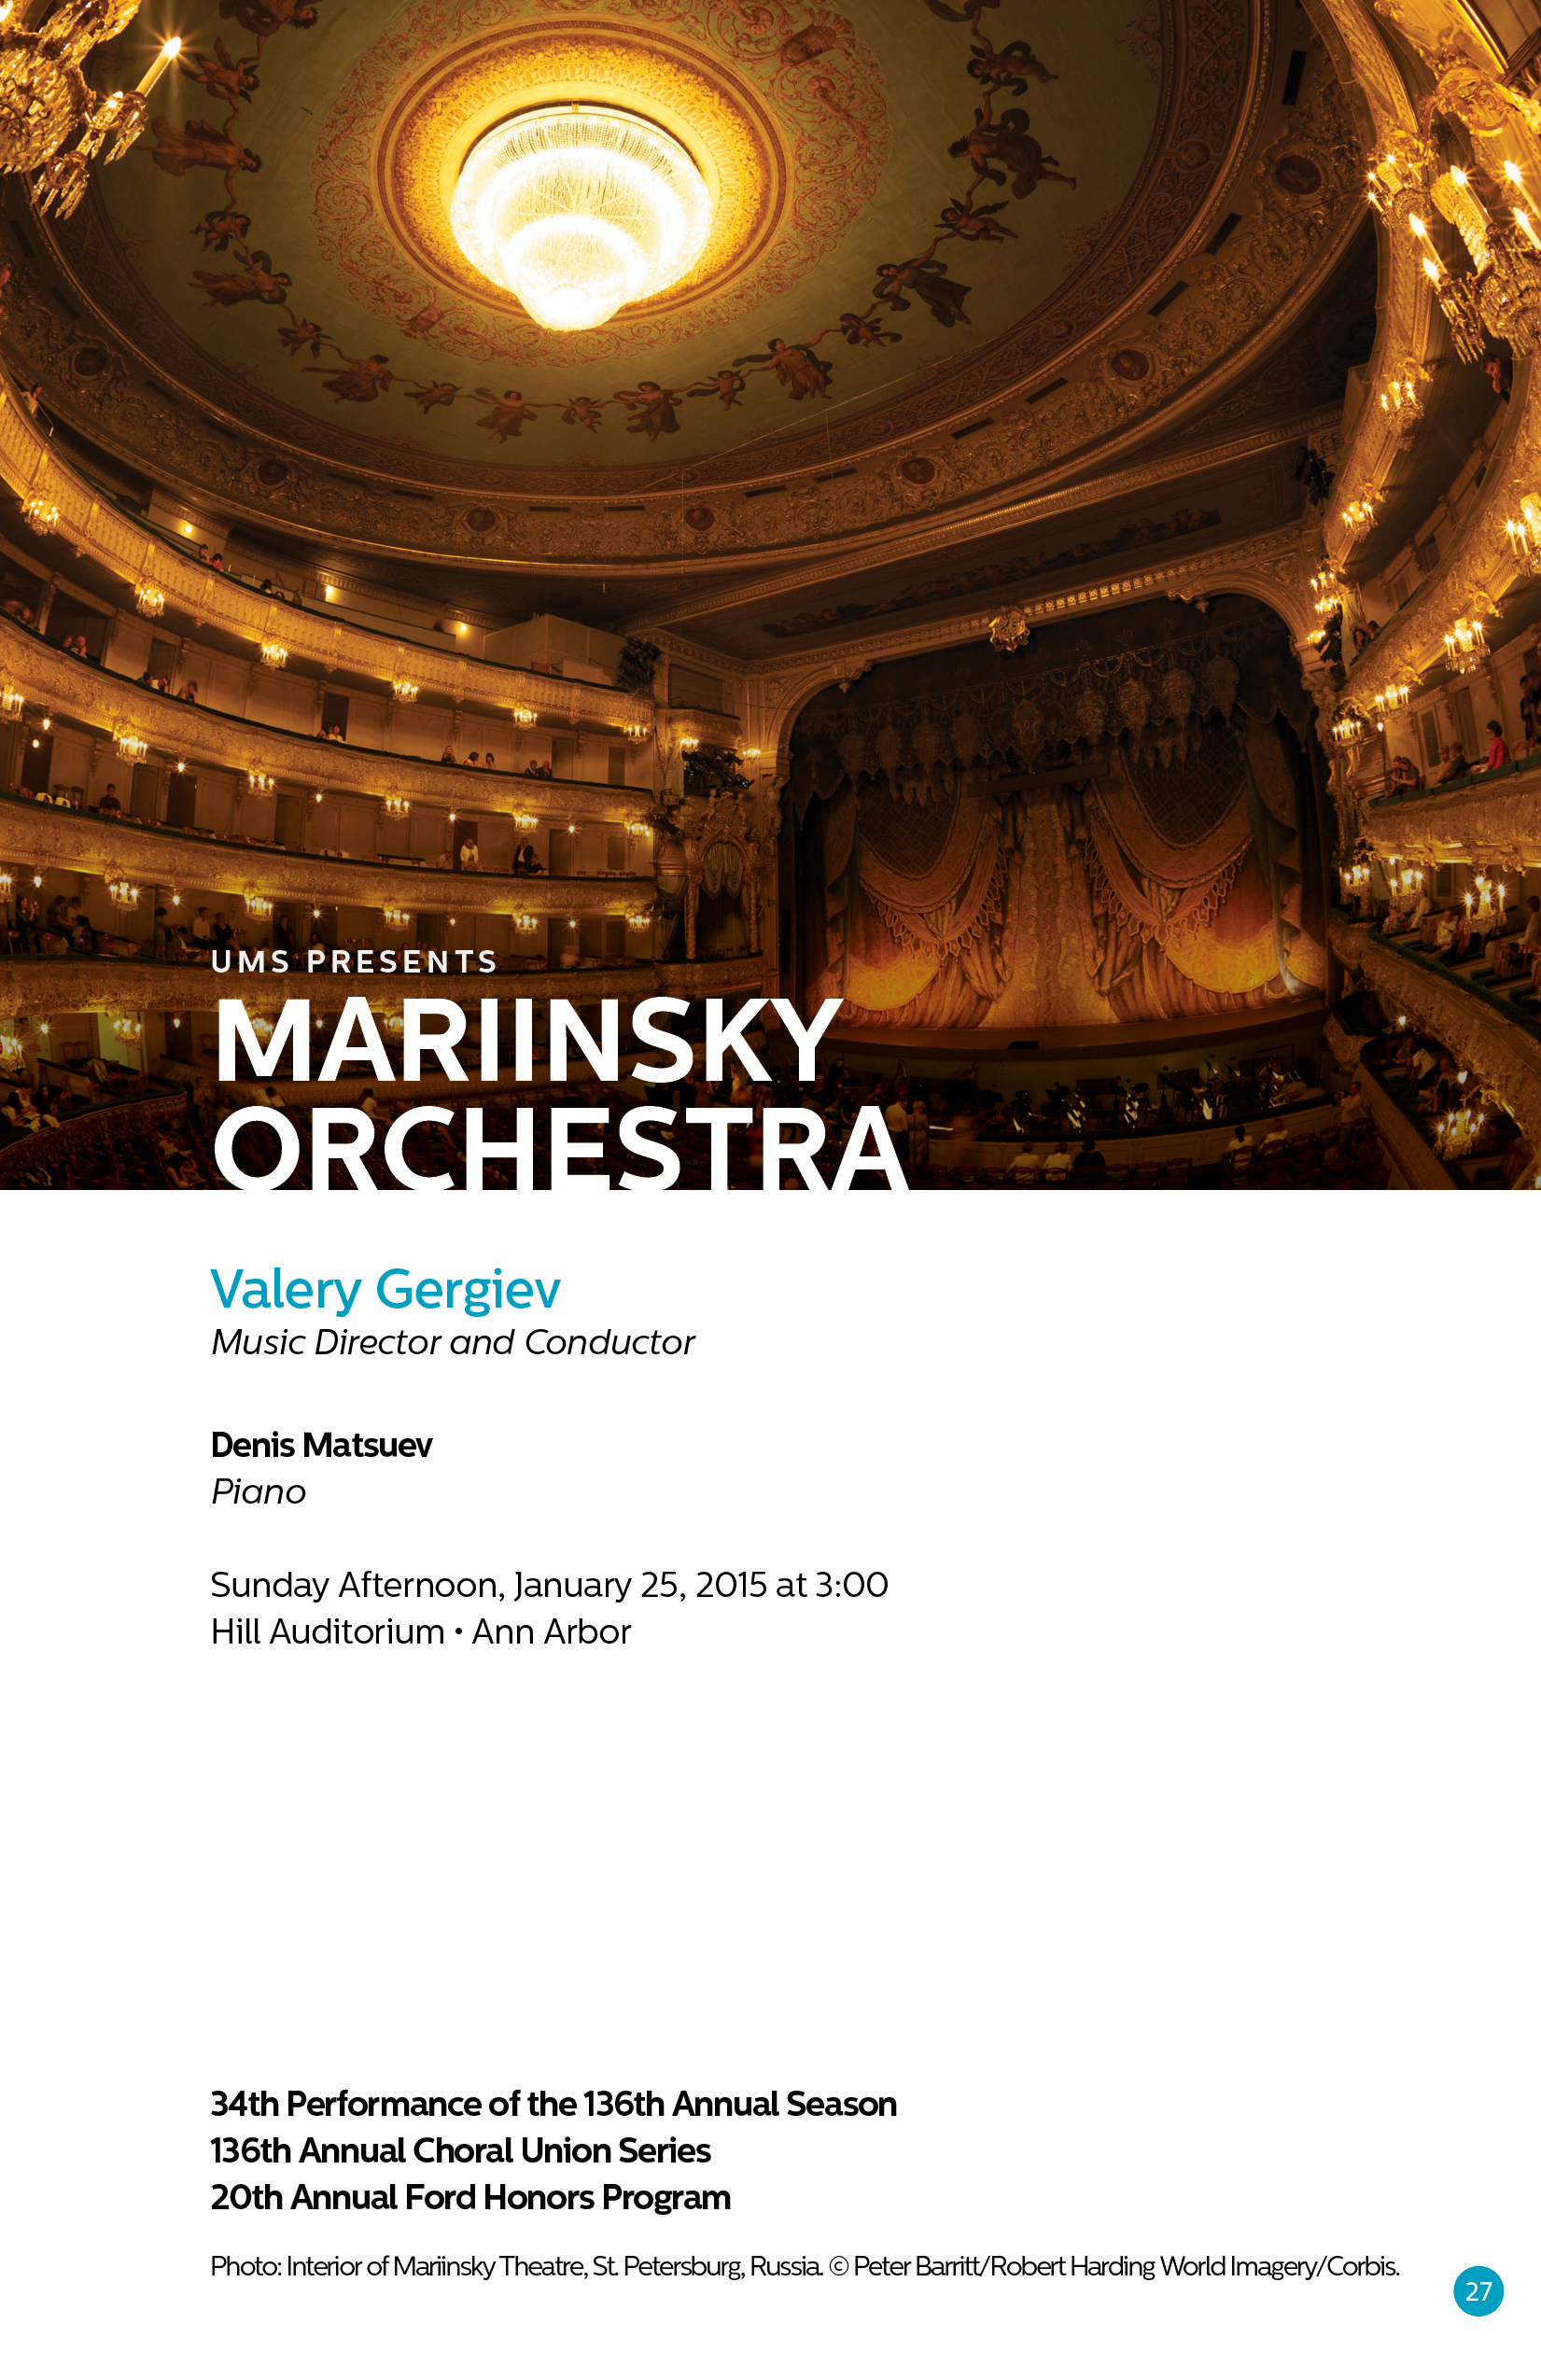 UMS Concert Program, January 17-25, 2015: Eighth Blackbird; Compagnie Marie Chouinard; Mariinsky Orchestra image